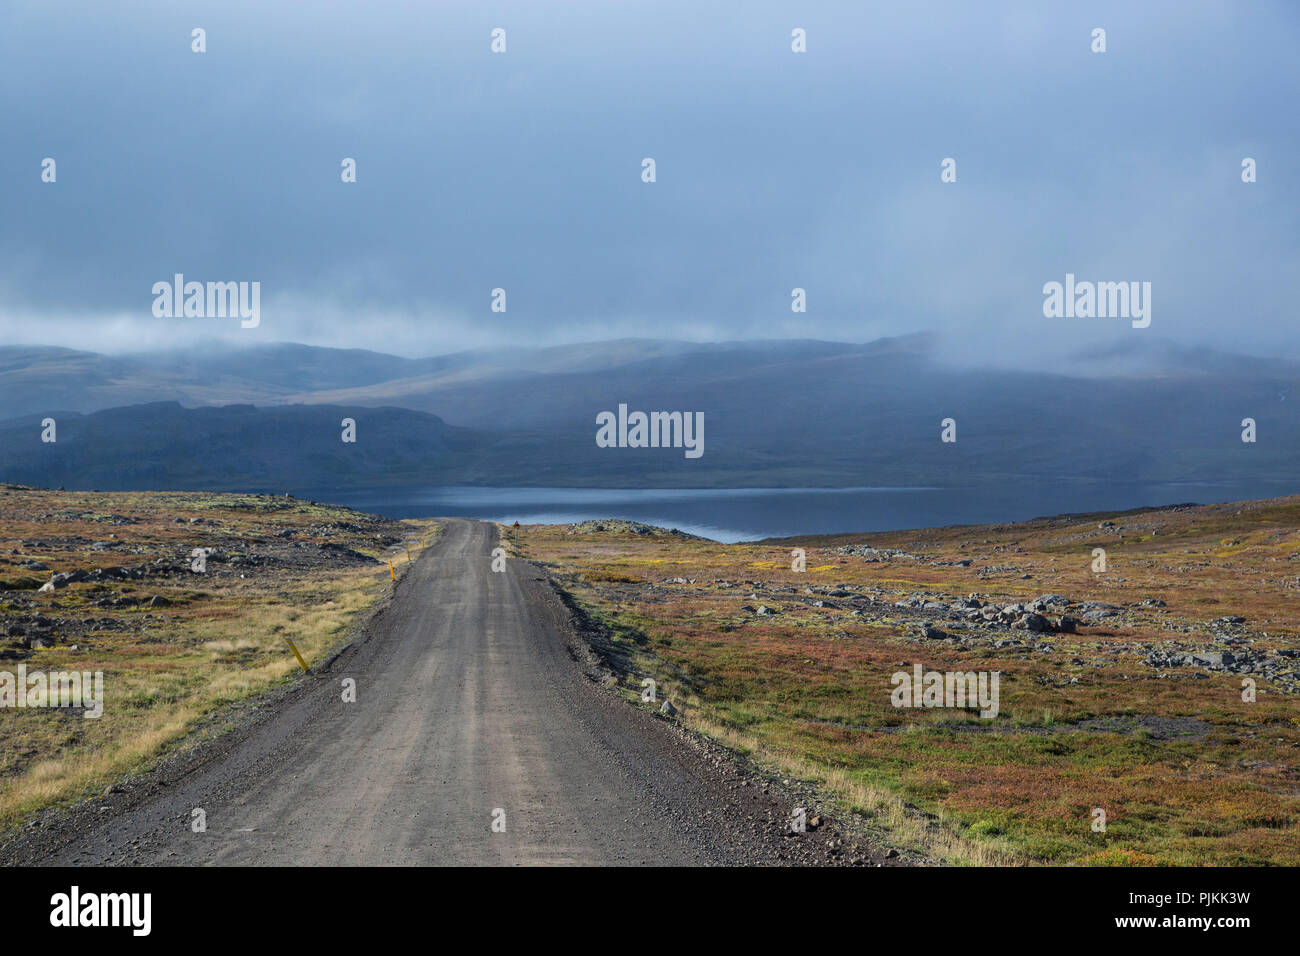 Iceland, sand road, Hrutafjord, road leading to nowhere, autumn colors, cloud atmosphere - Stock Image